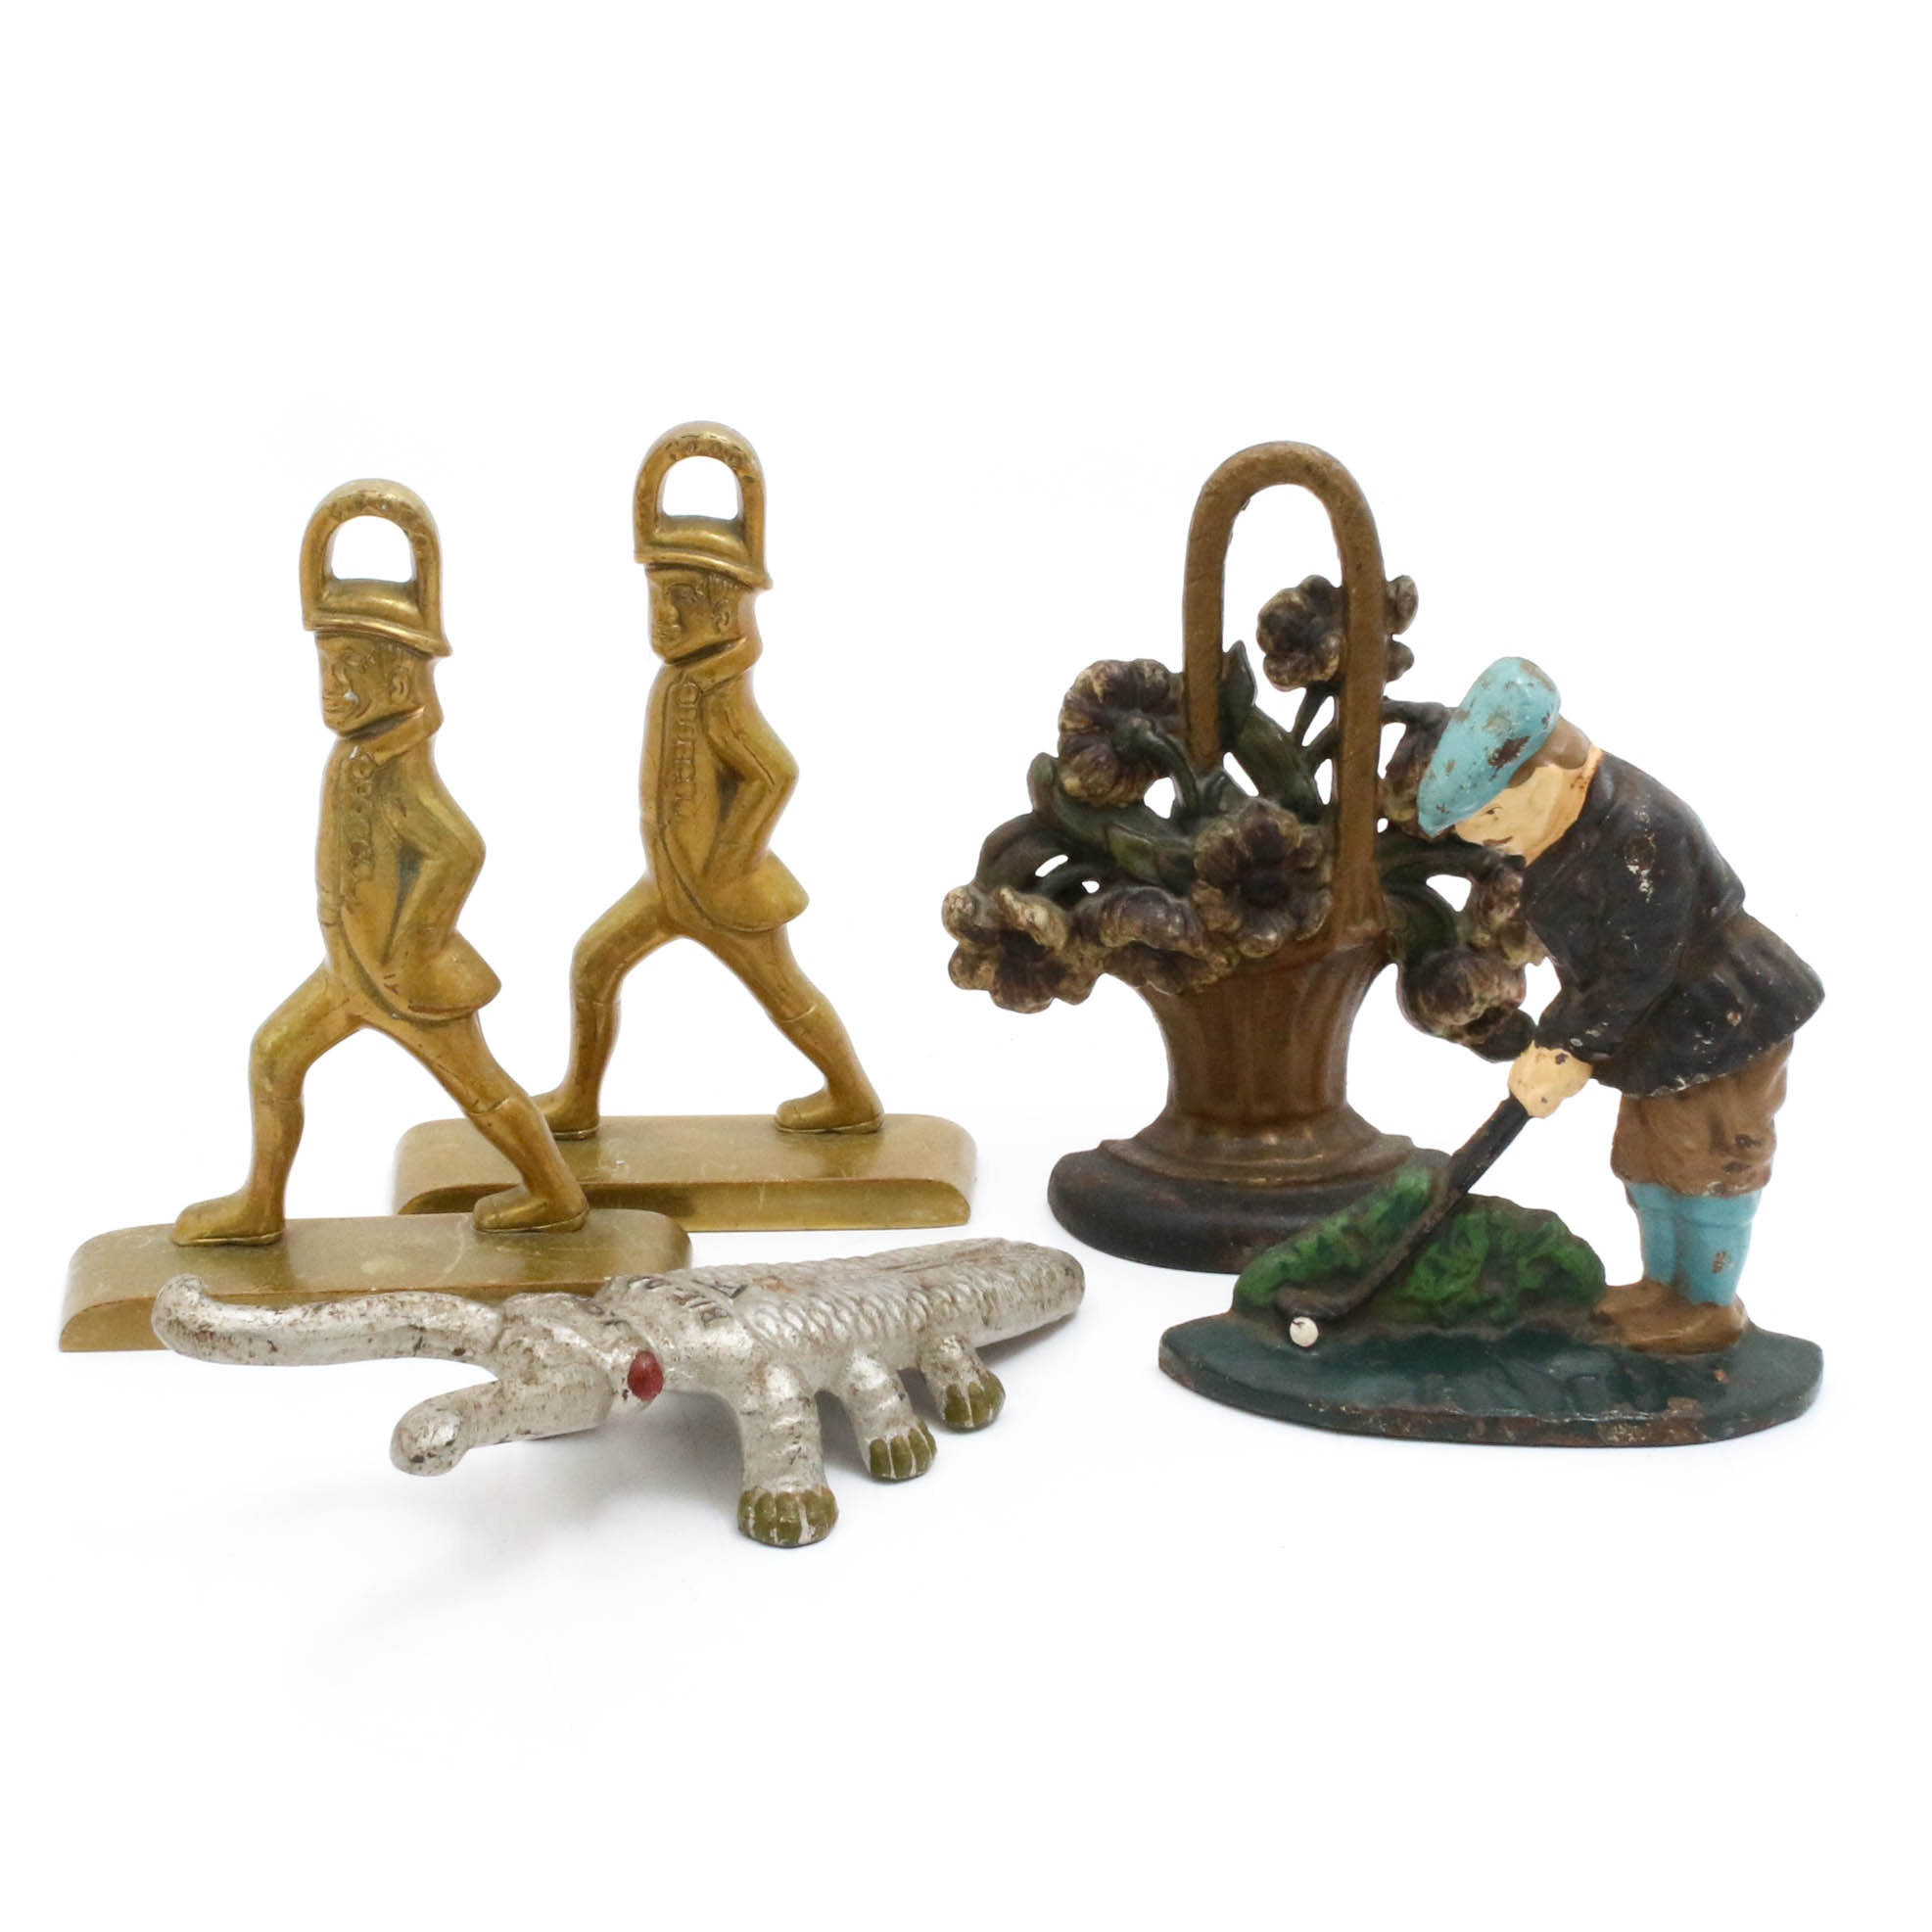 Virginia Metalcrafters Hessian Figural Doorstops with Bookends and Boot Jack